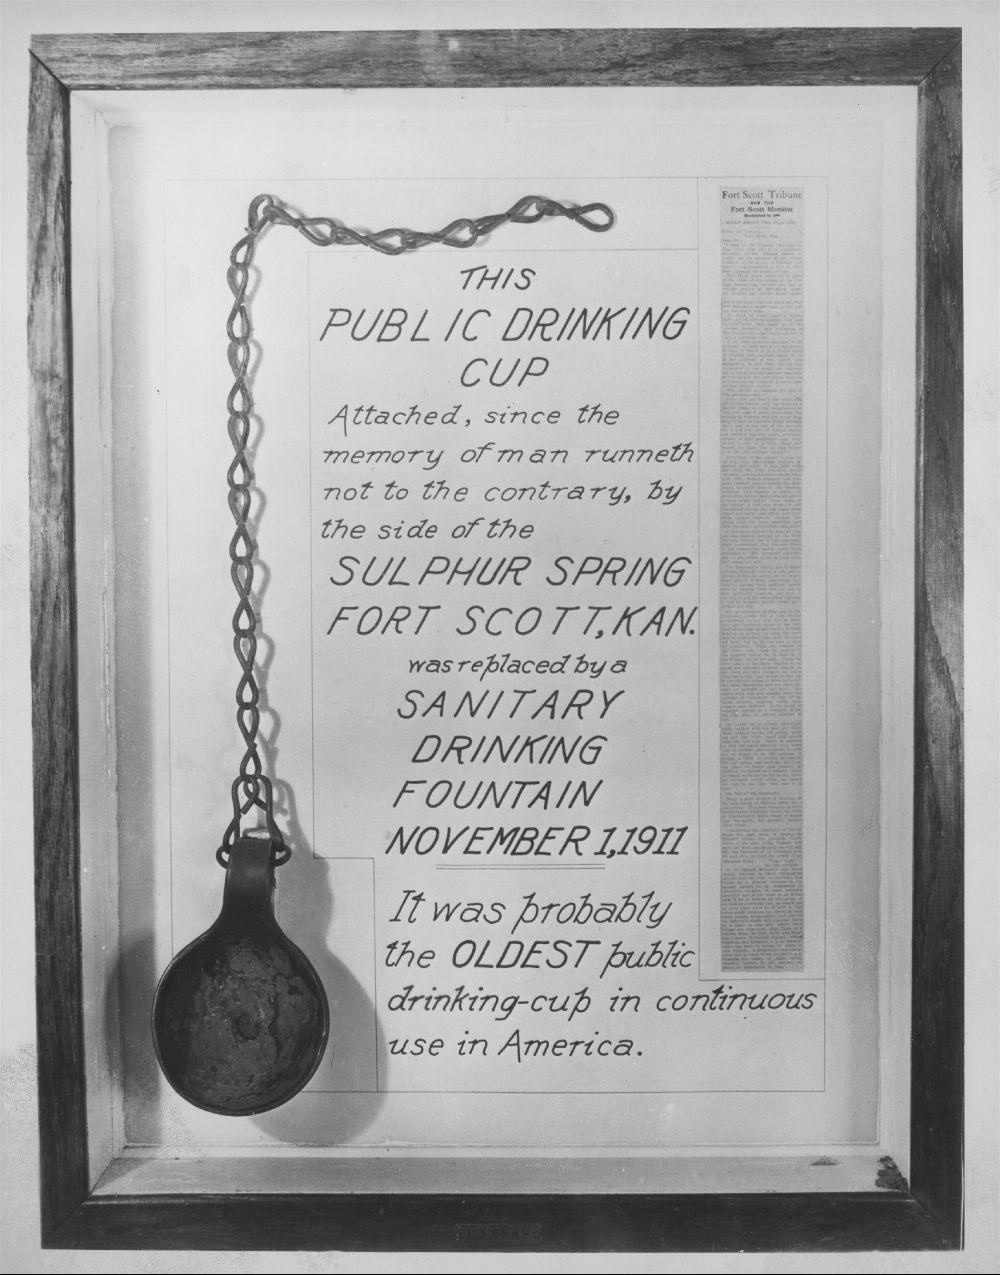 Public drinking cup display